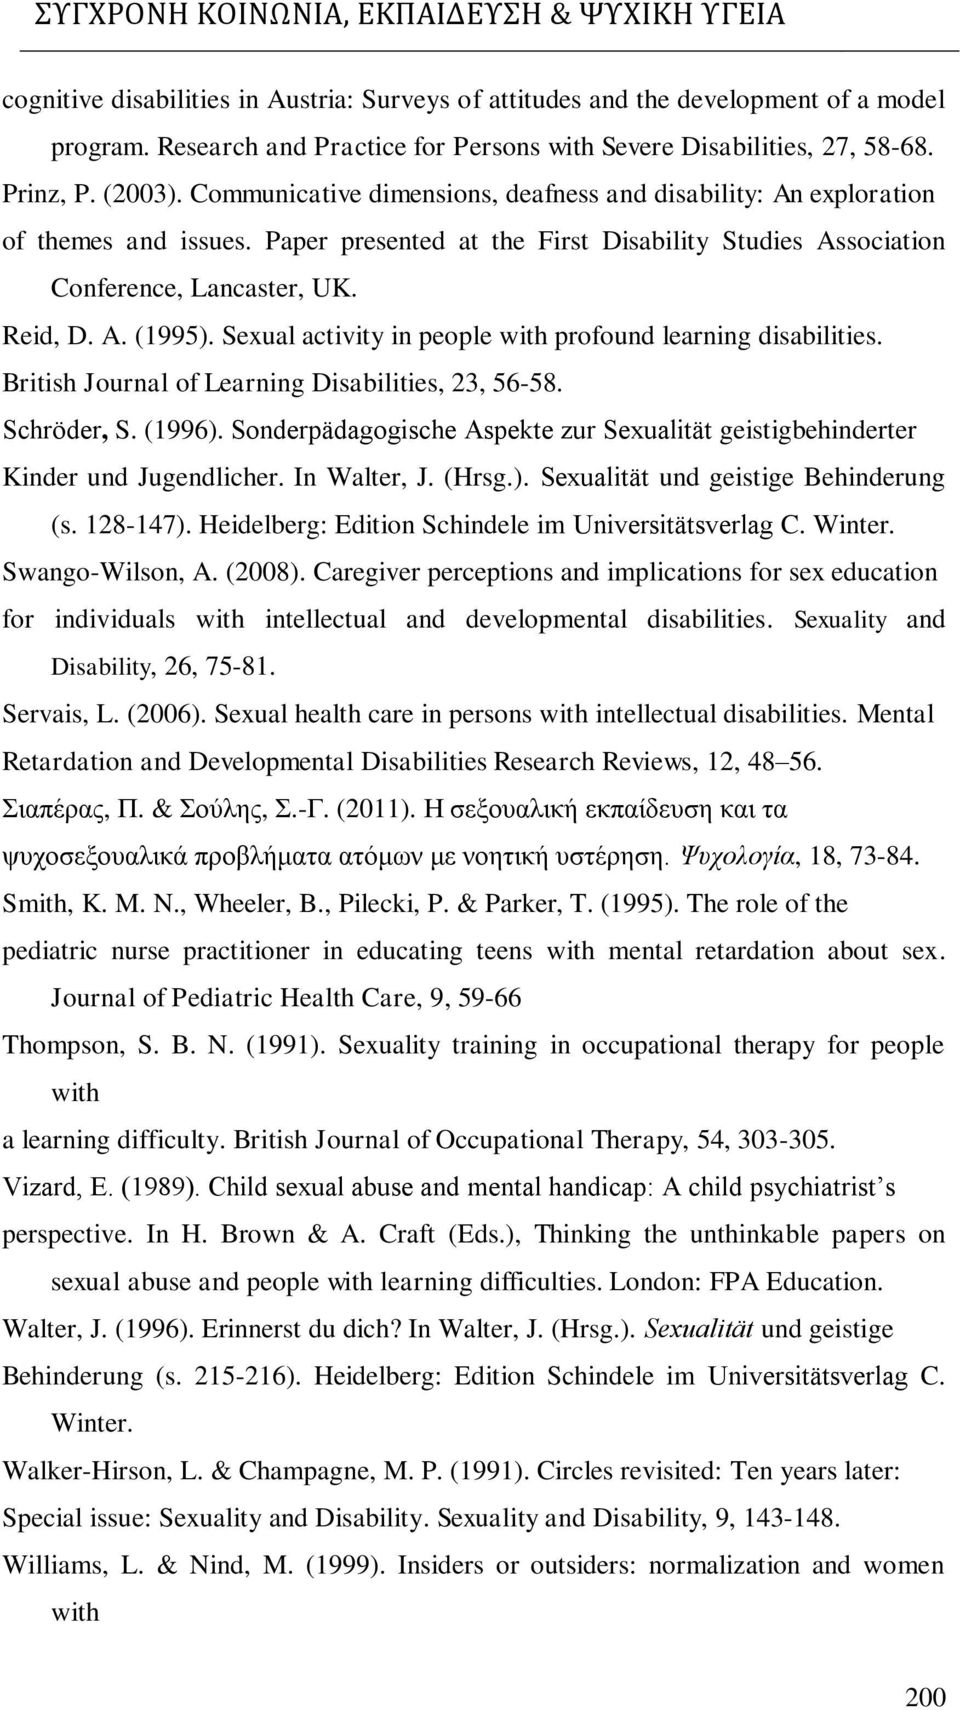 Sexual activity in people with profound learning disabilities. British Journal of Learning Disabilities, 23, 56-58. Schröder, S. (1996).